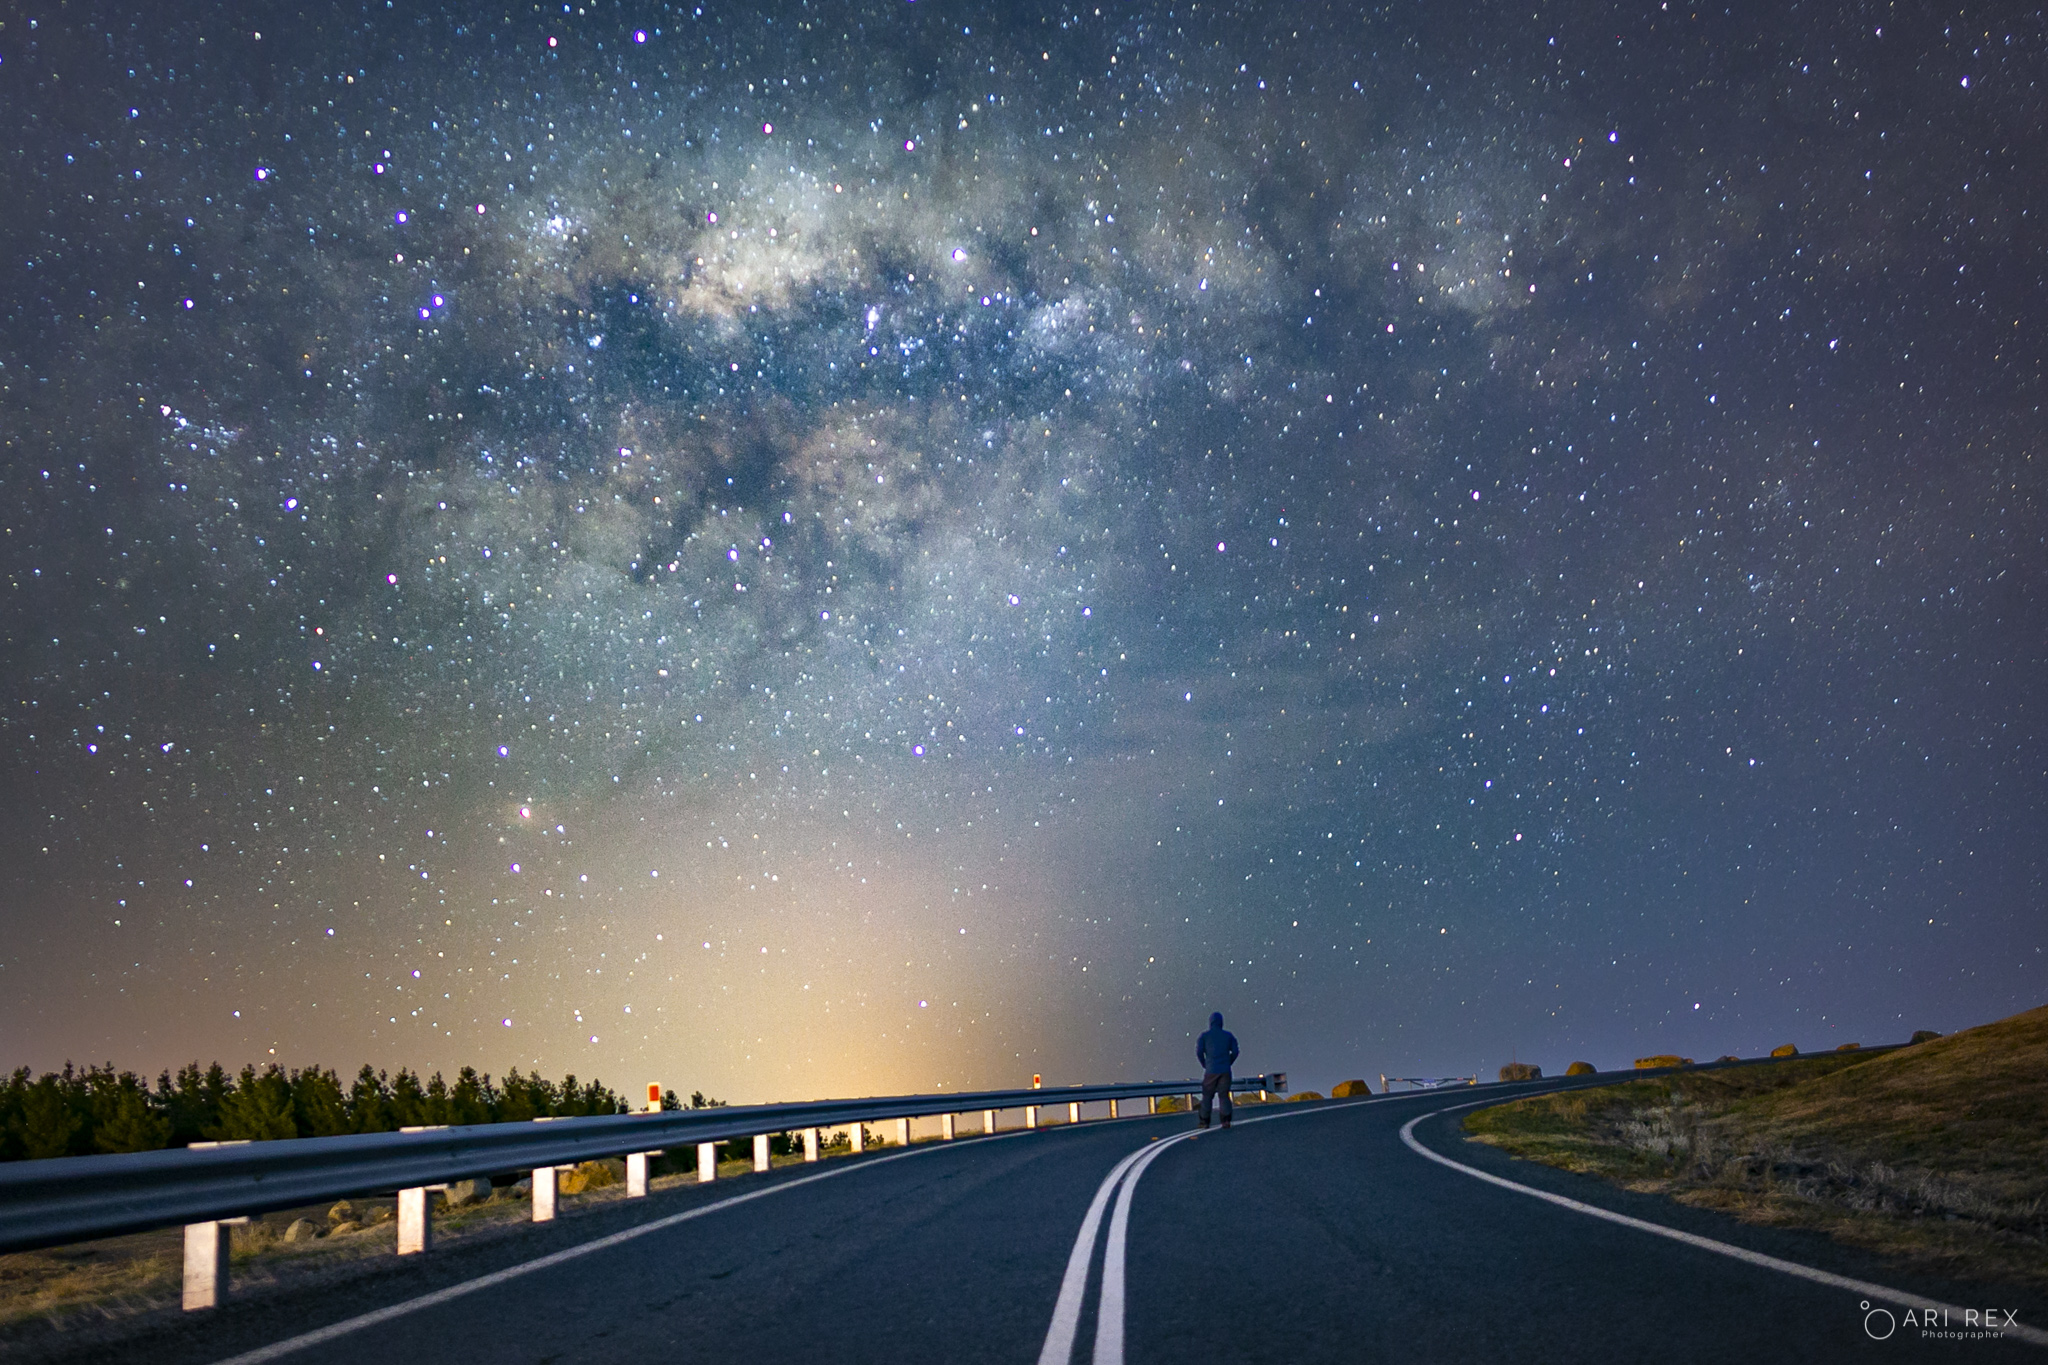 Milky Way in Canberra